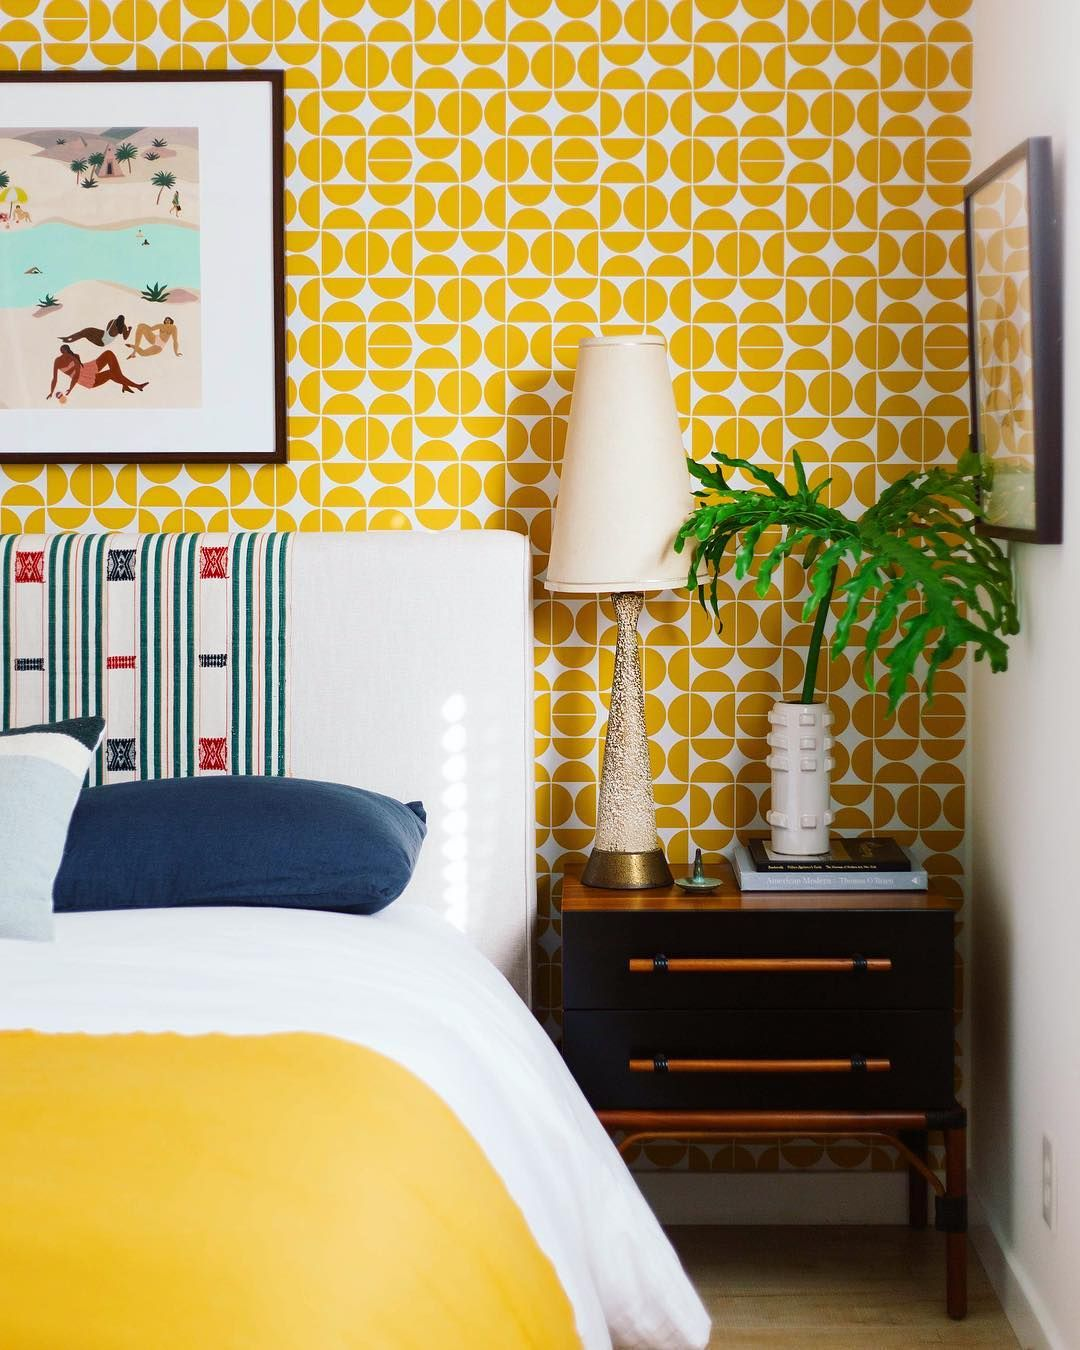 10 Cheerful Yellow Bedrooms - Chic Ideas for Yellow Bedroom Decor